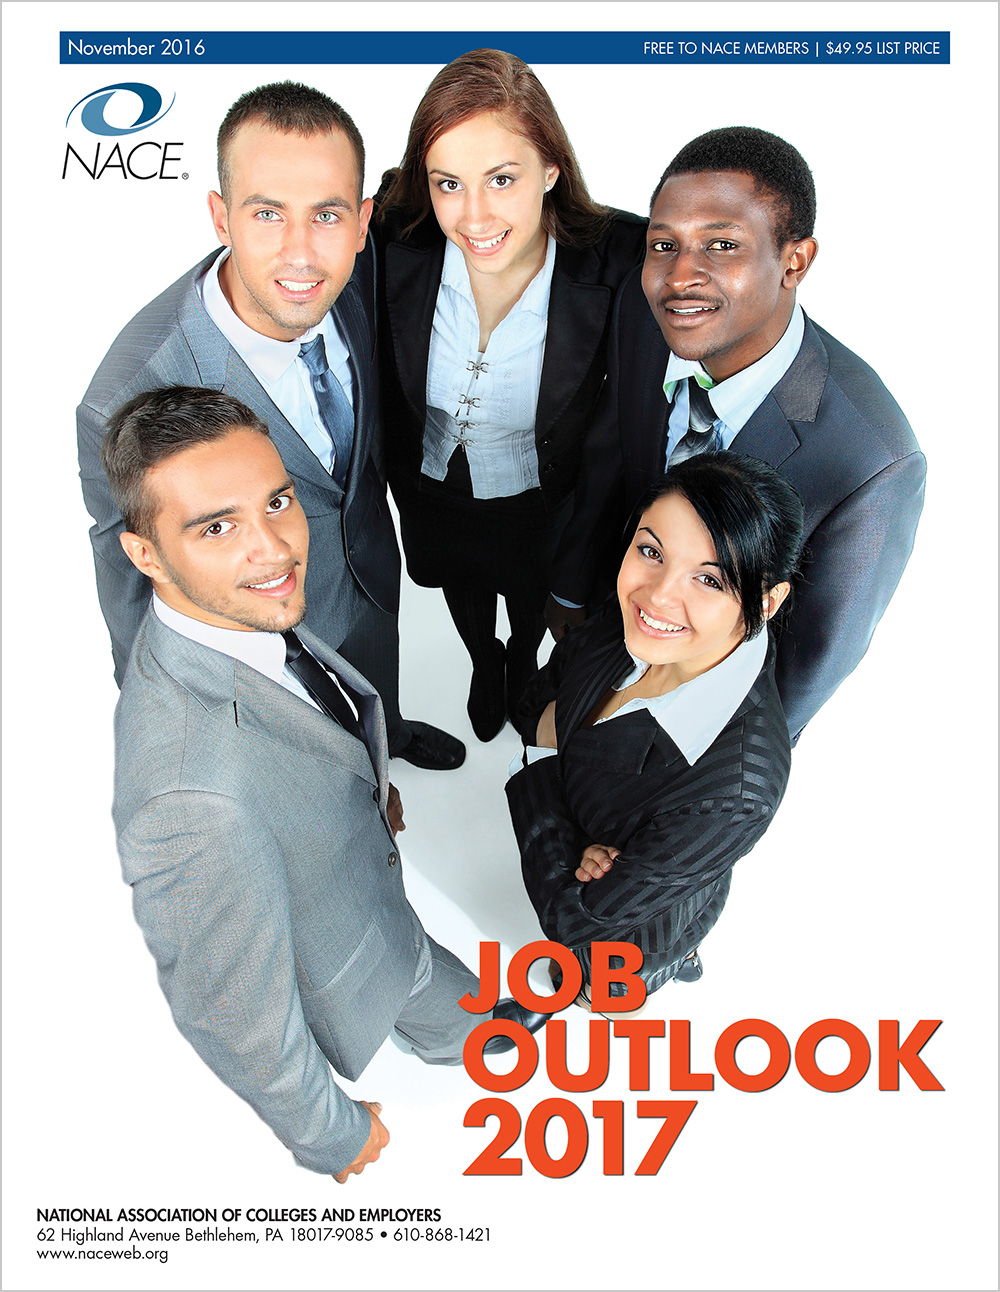 Job Outlook 2017 (Nonmember Price)